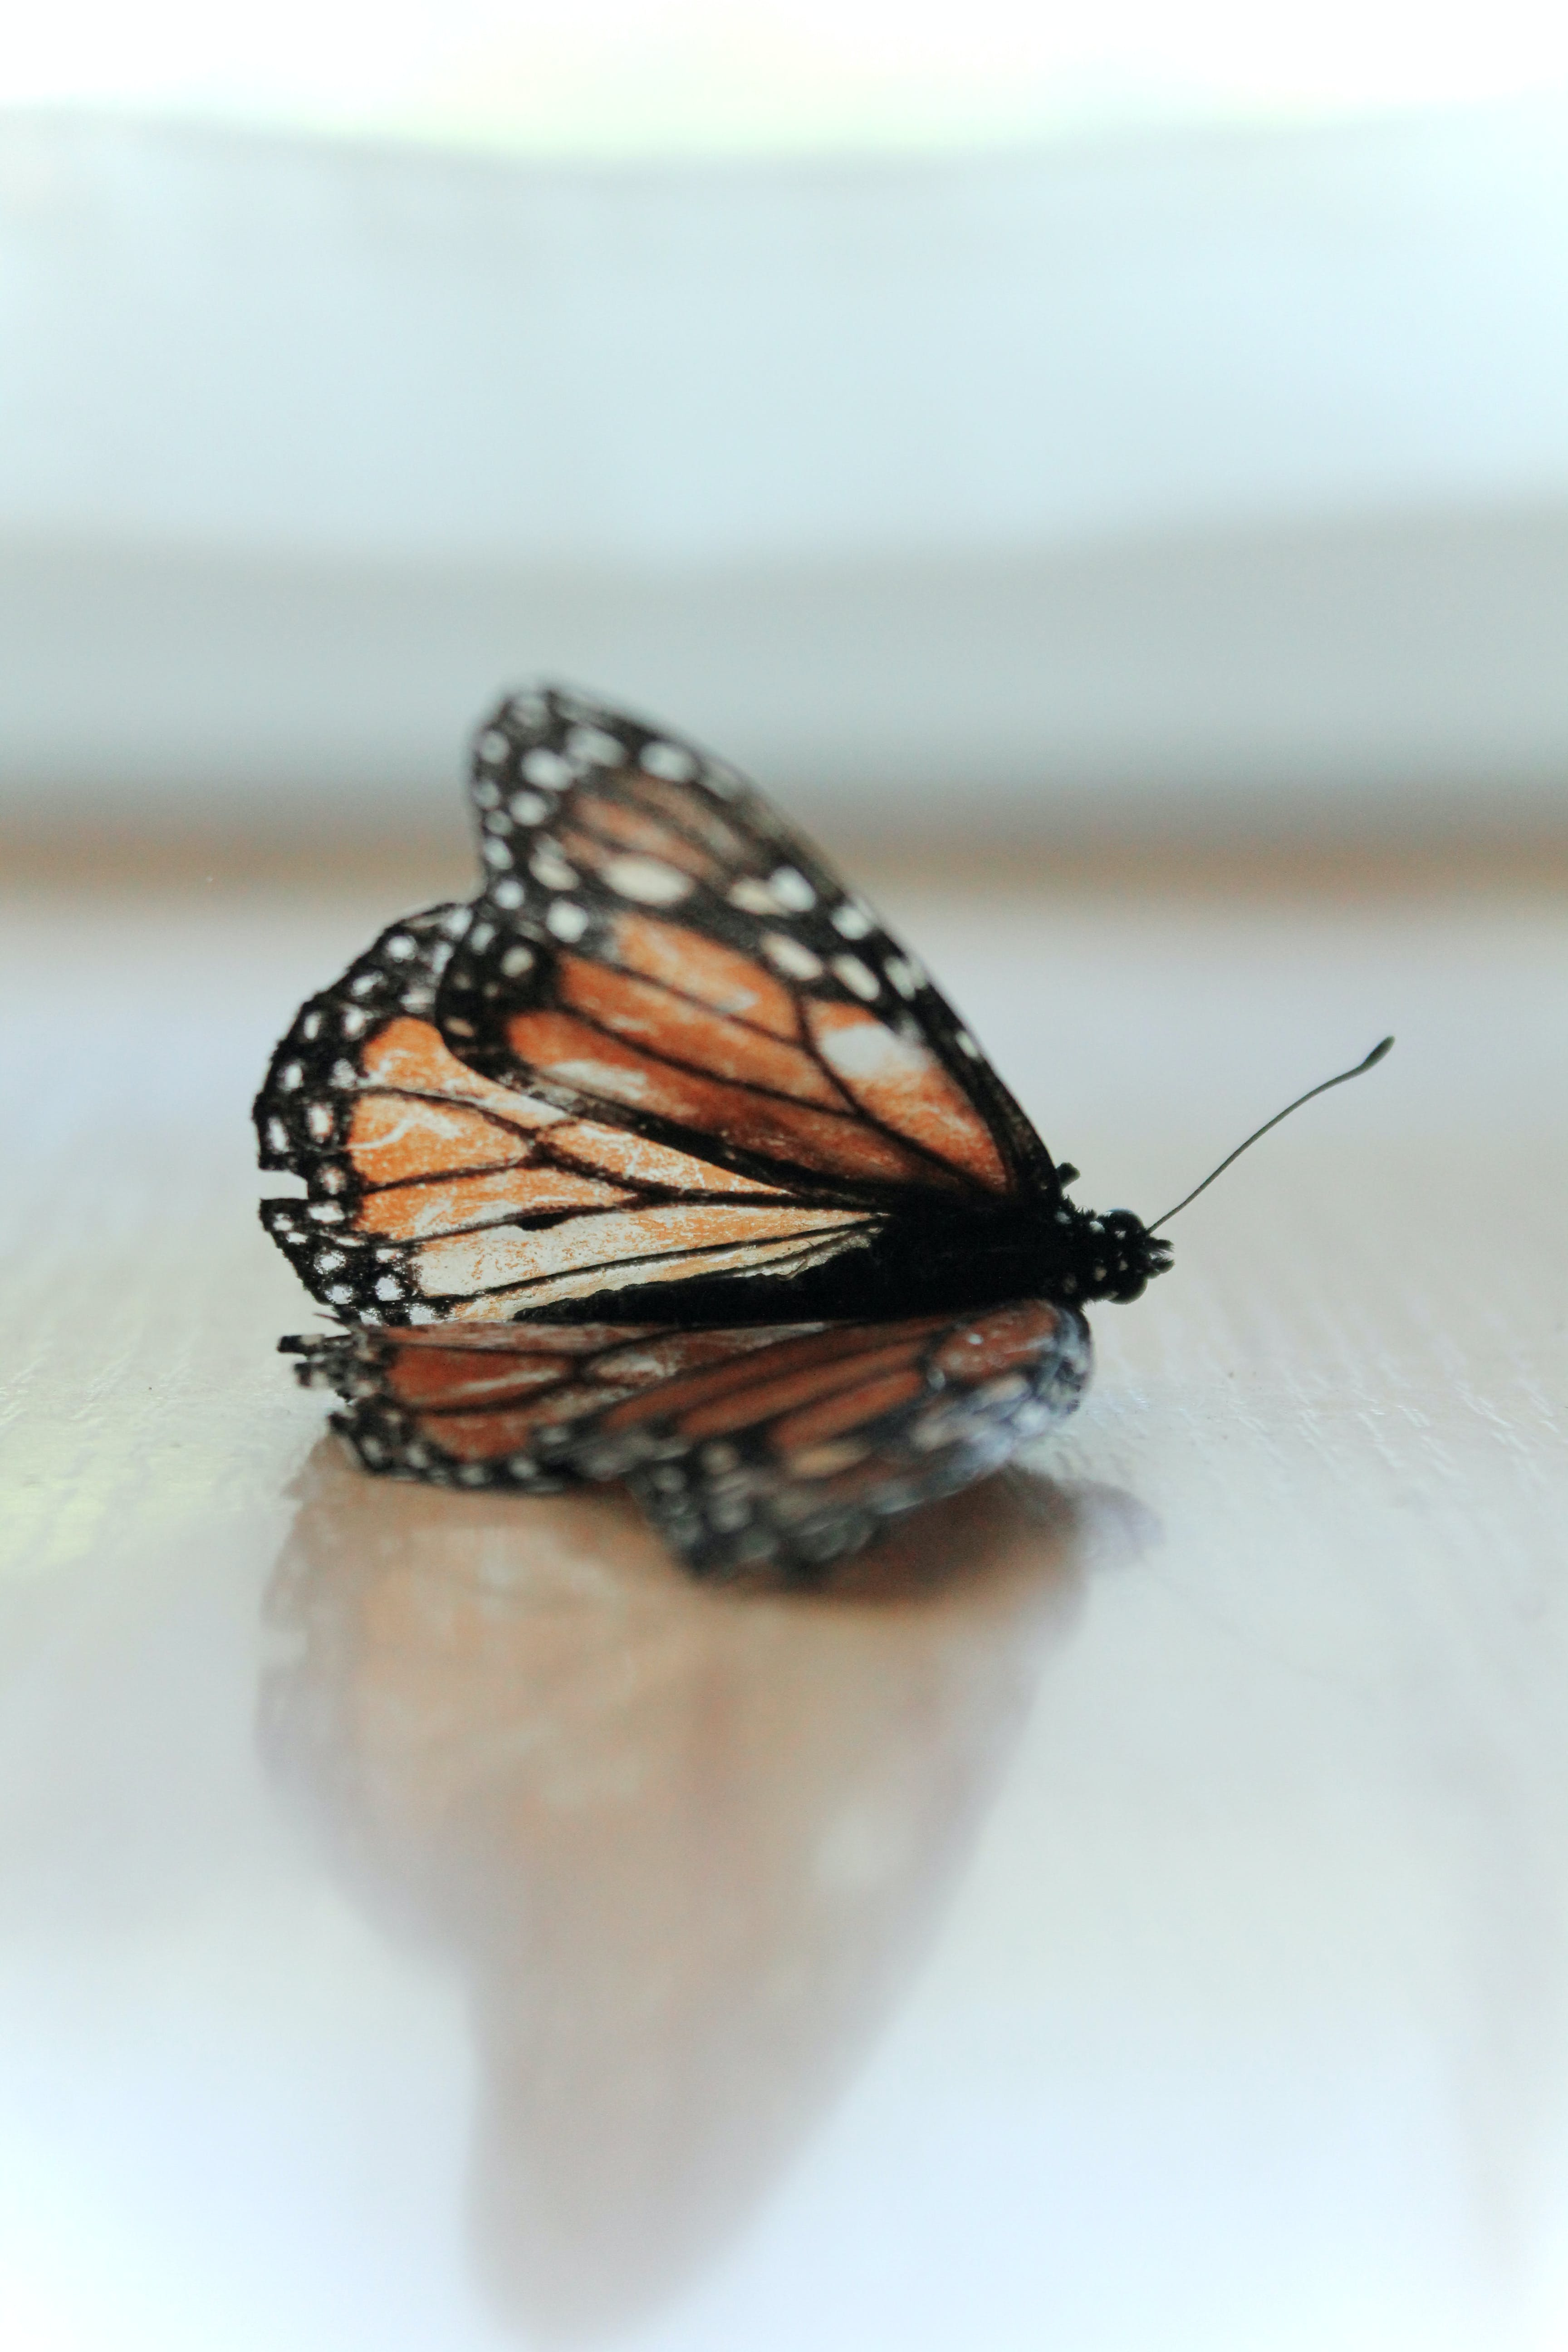 Monarch Butterfly on Brown Surface in Closeup Photo